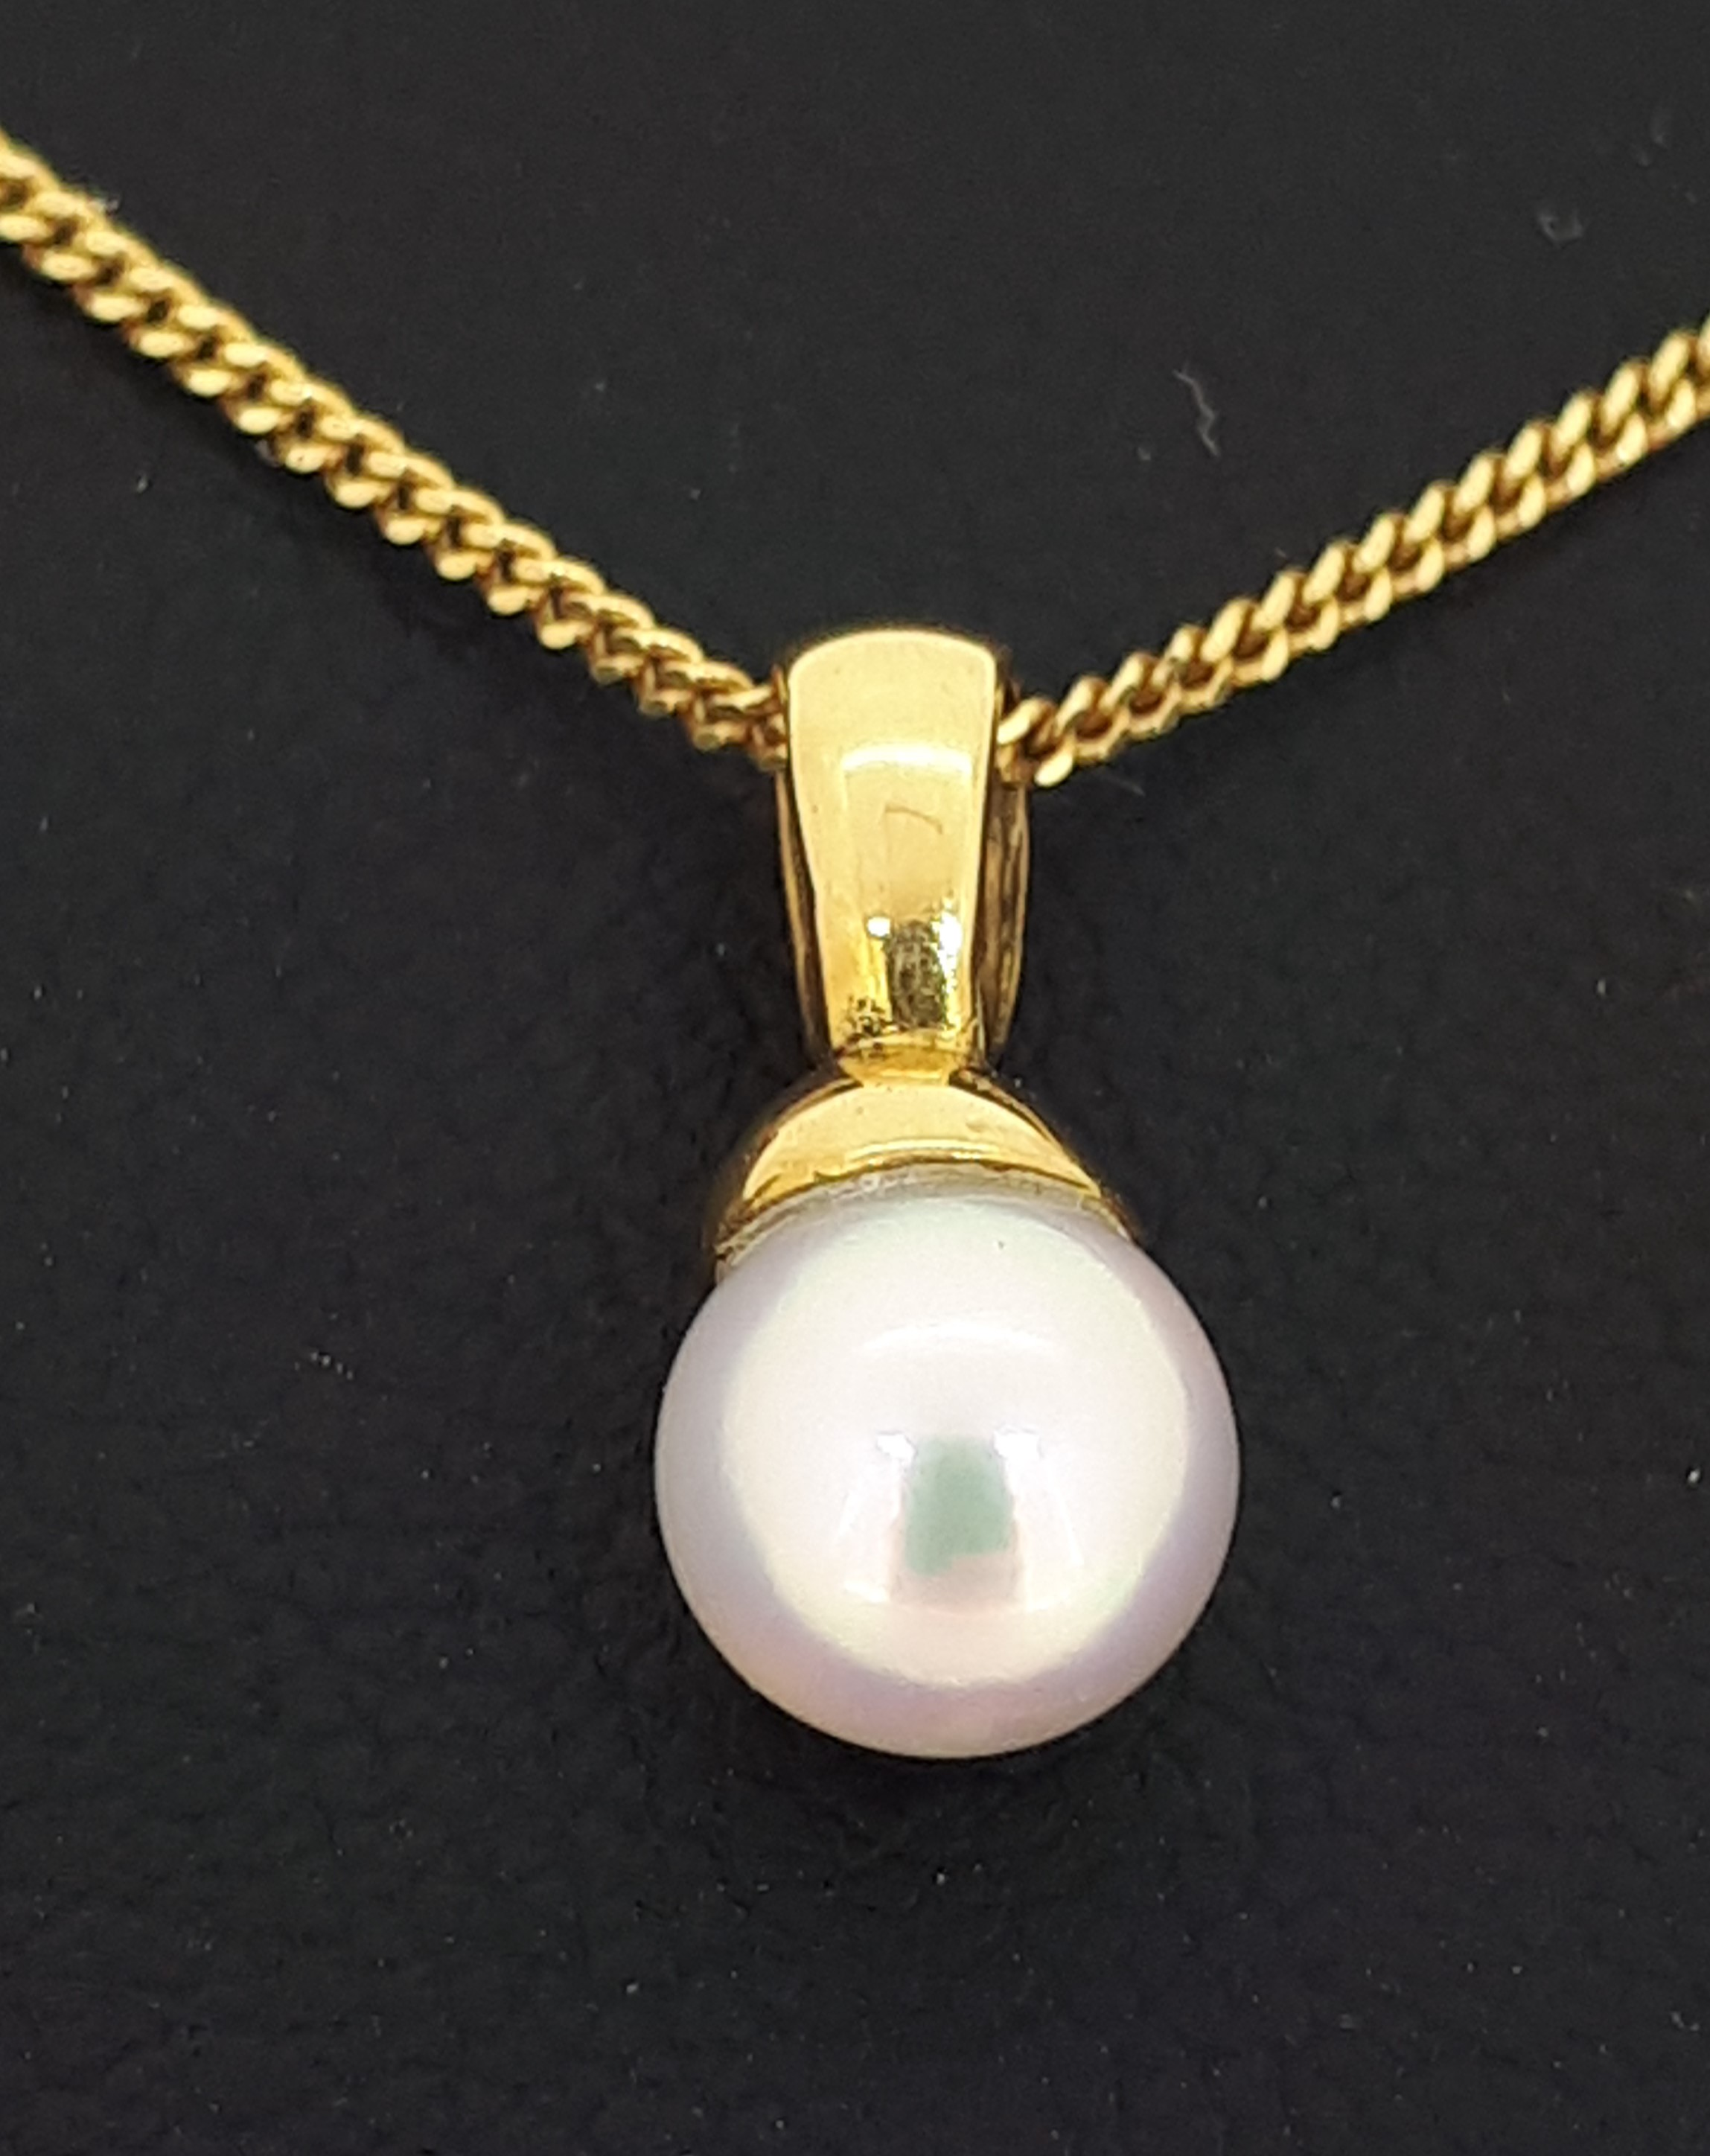 18ct (750) Yellow Gold 5.5-6mm Pearl Pendant on 18ct Yellow Gold Curb Chain - Image 3 of 4